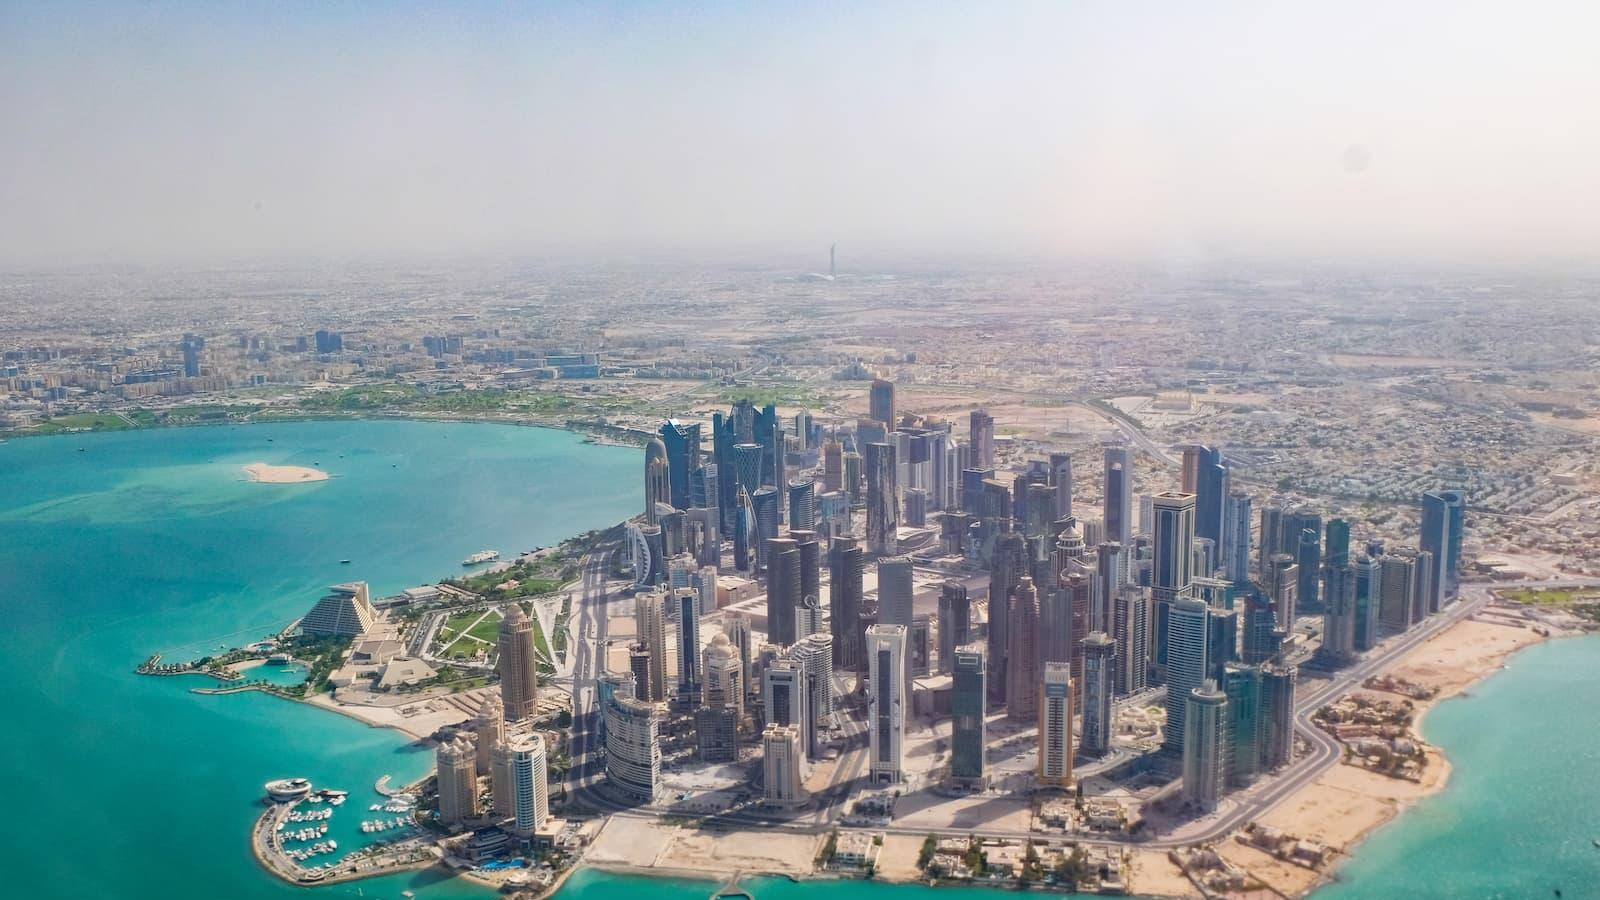 GCO launches interactive COVID-19 measures guide for travelers coming to Qatar